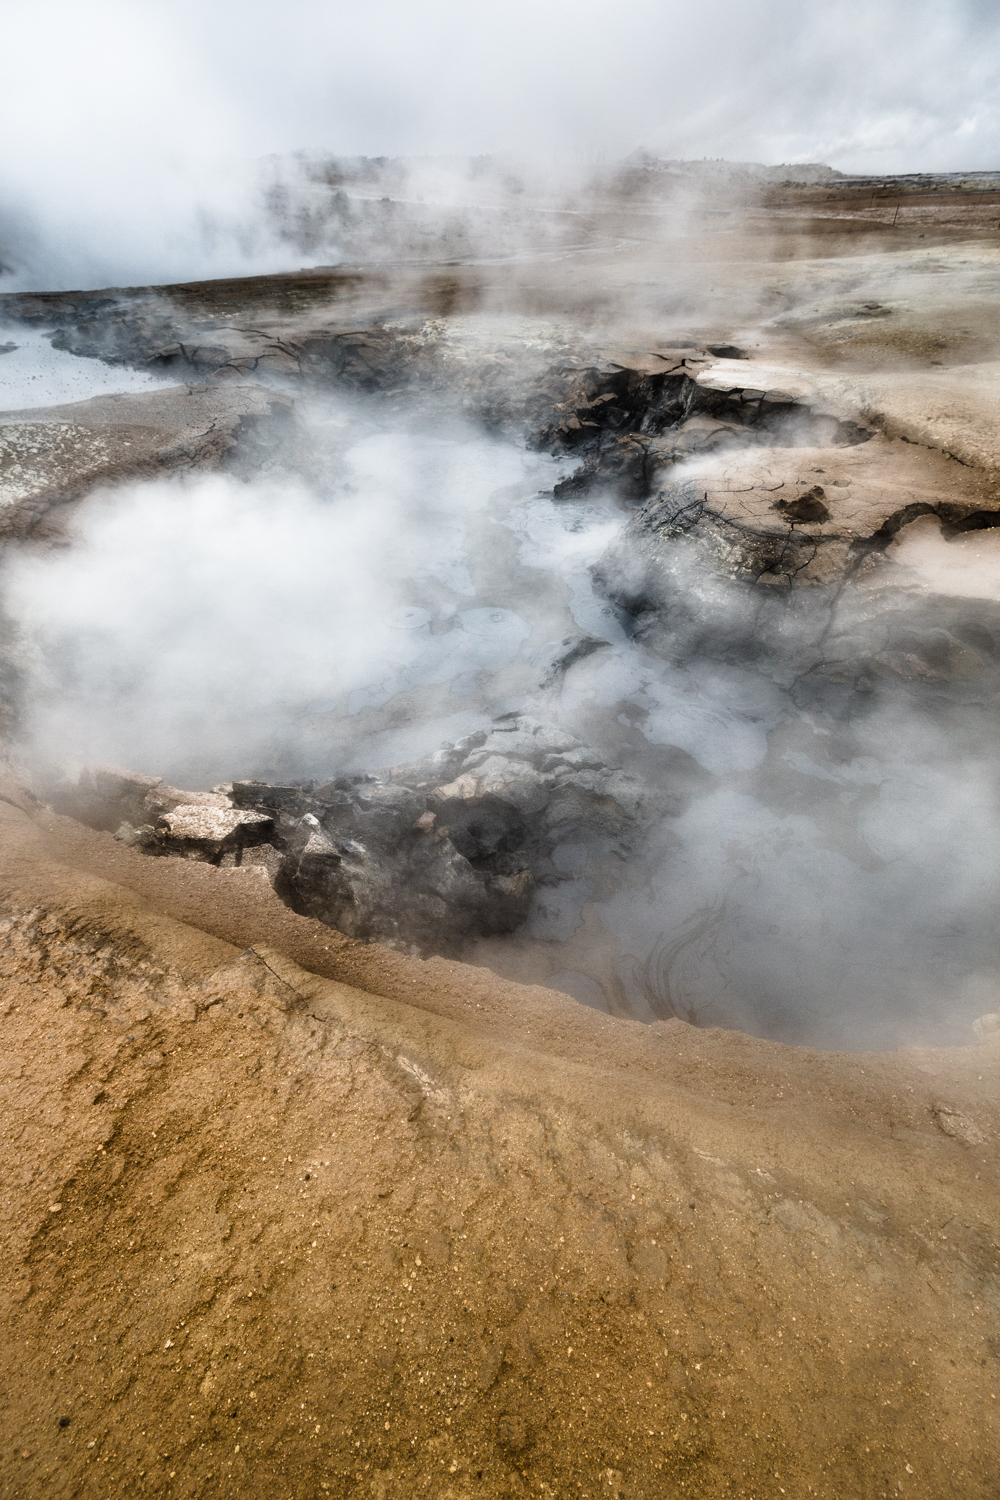 geothermal boiling mudfields, akureyri iceland photography by david jensen